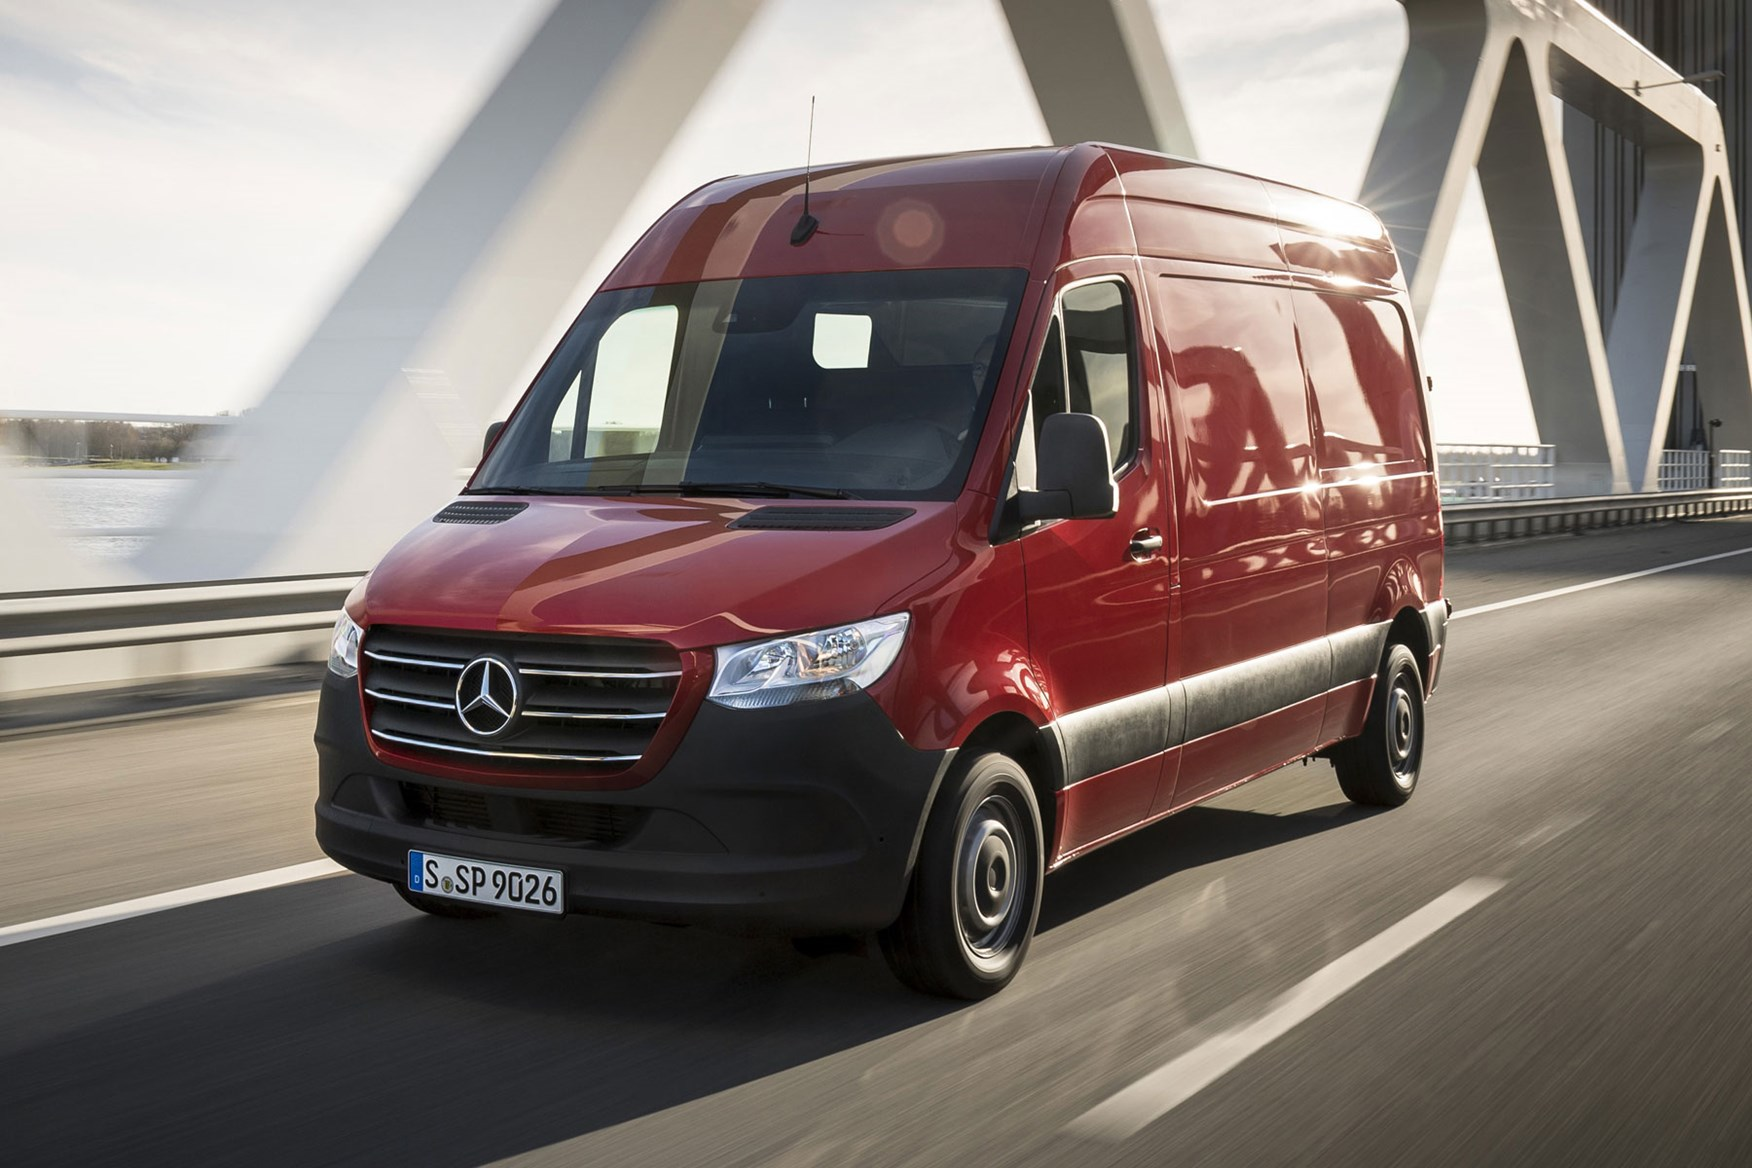 Mercedes Sprinter 2018 News Parkers Pump Wiring L1 L2 All New Official Technical Details And Pictures On Vans